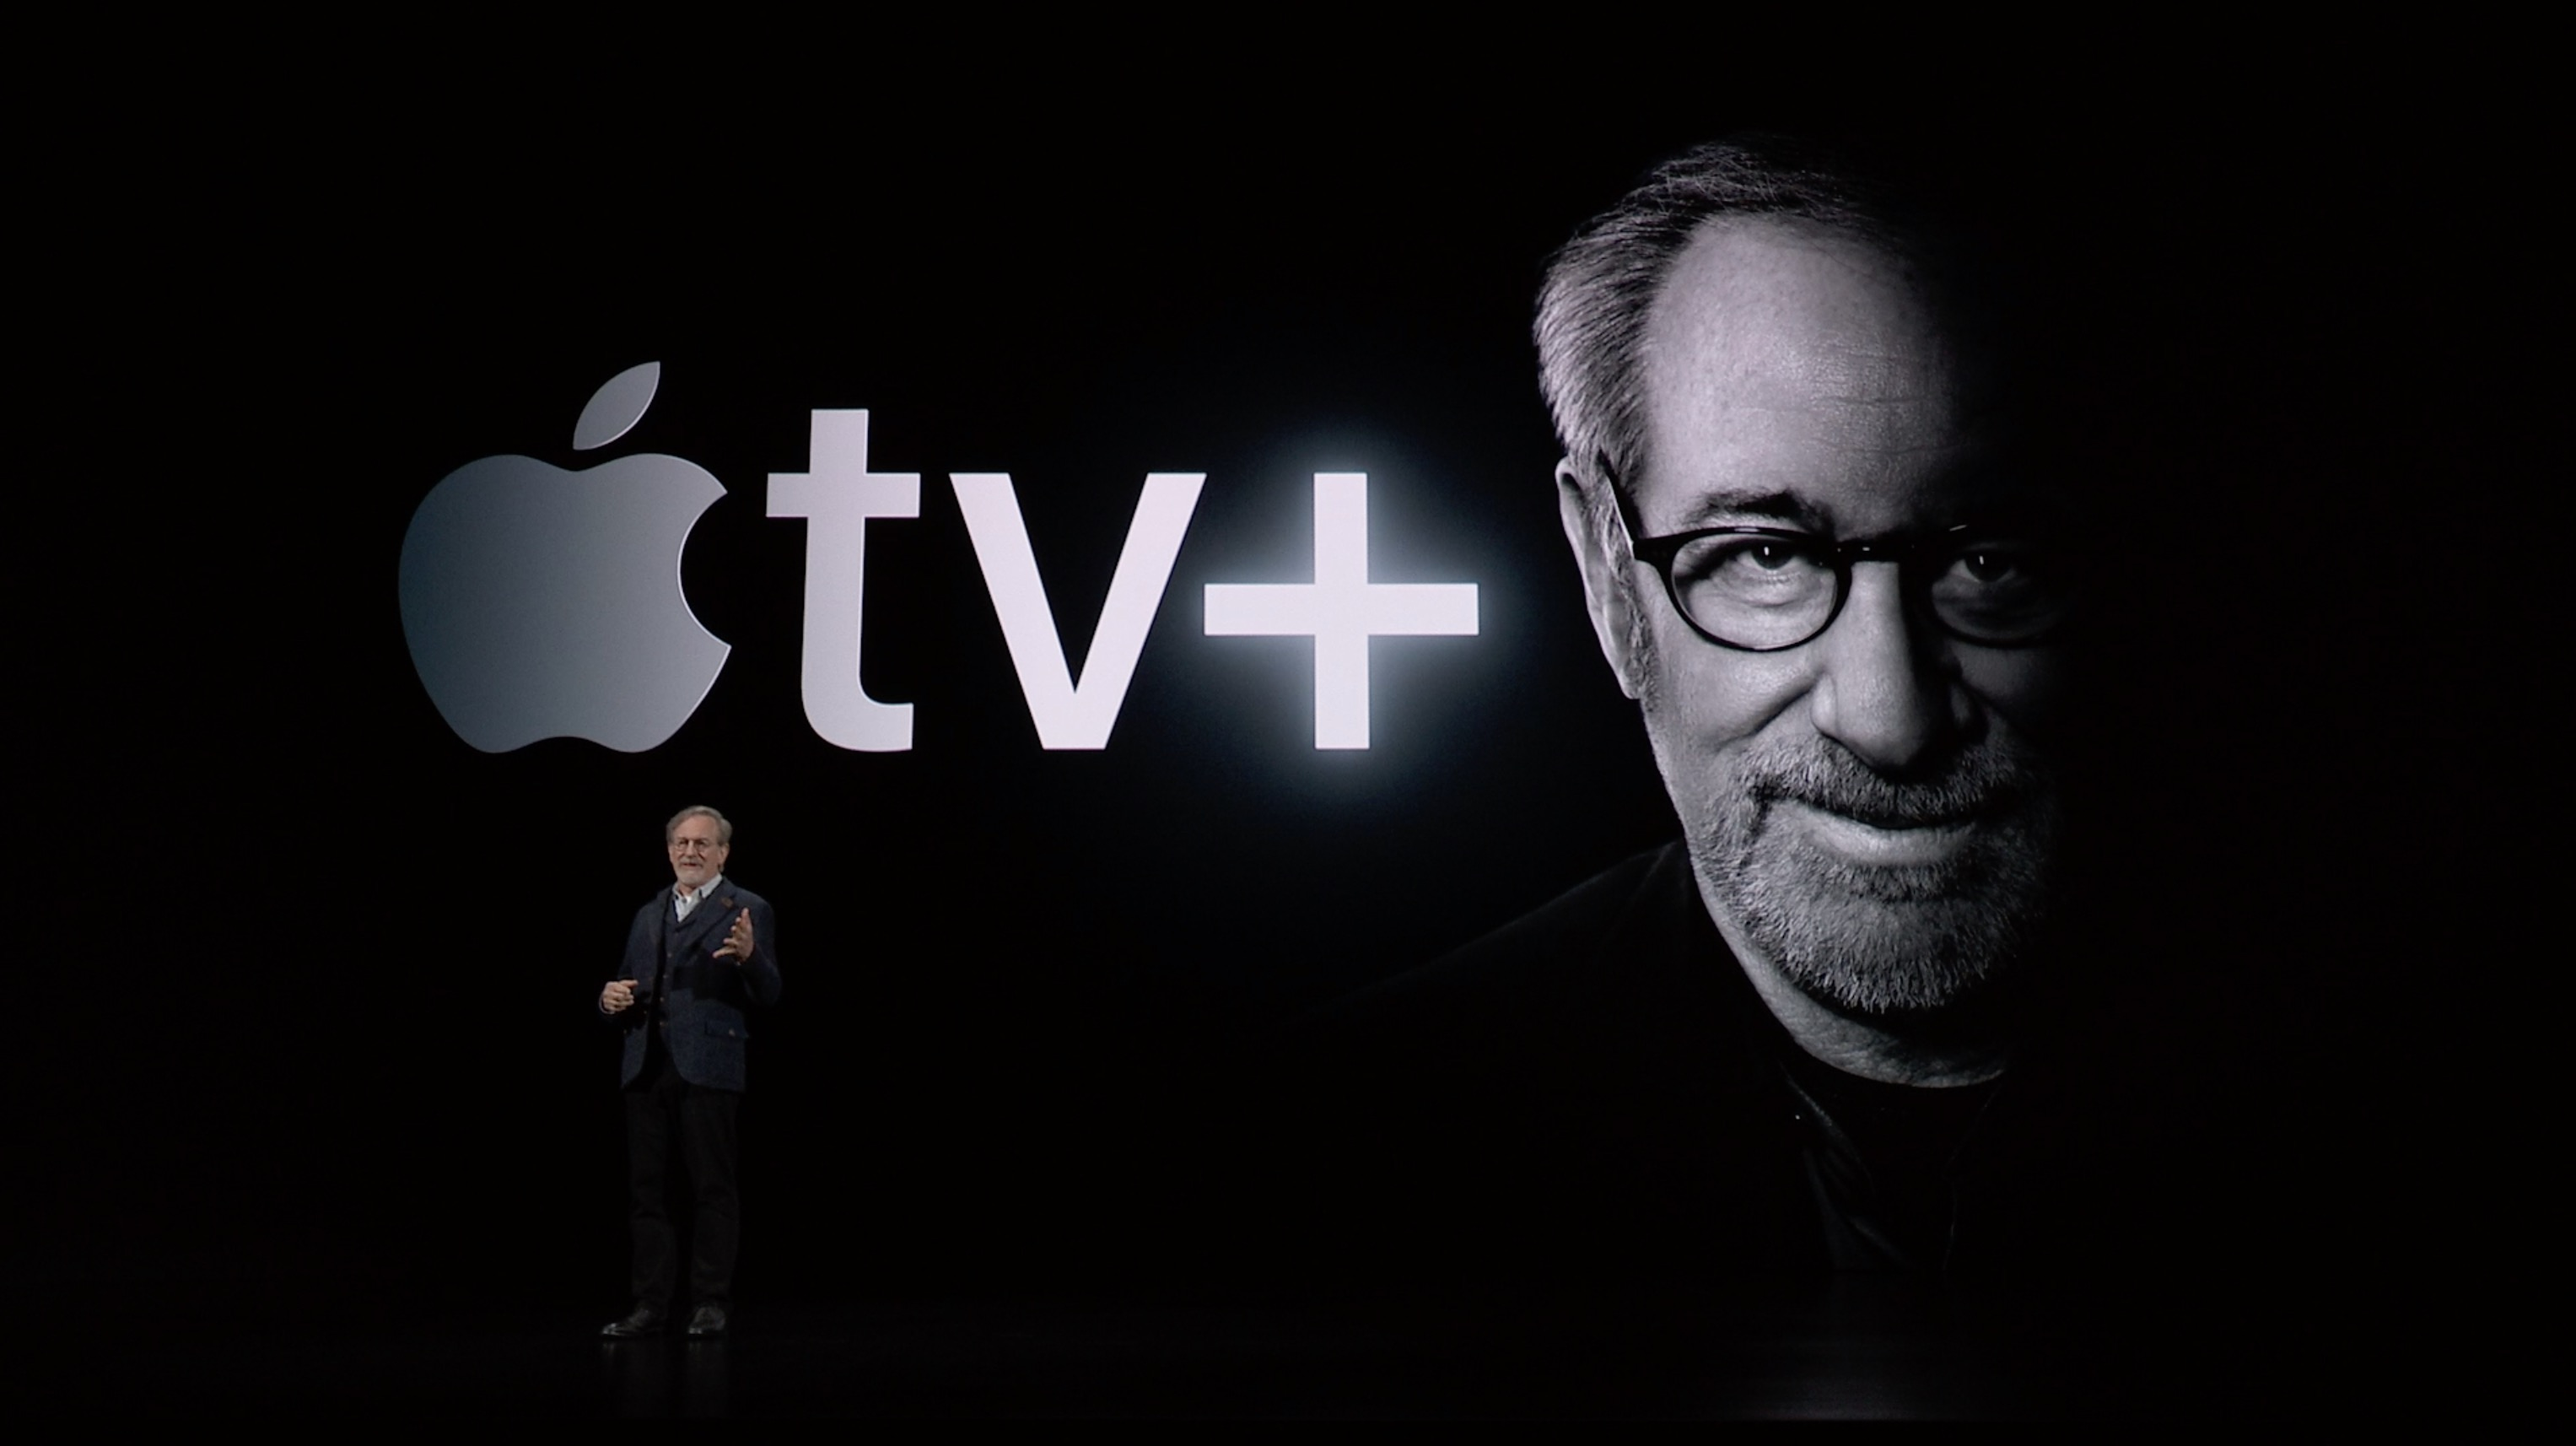 It was not a good conference for Poles. Apple s news again bypasses Poland with a wide arc